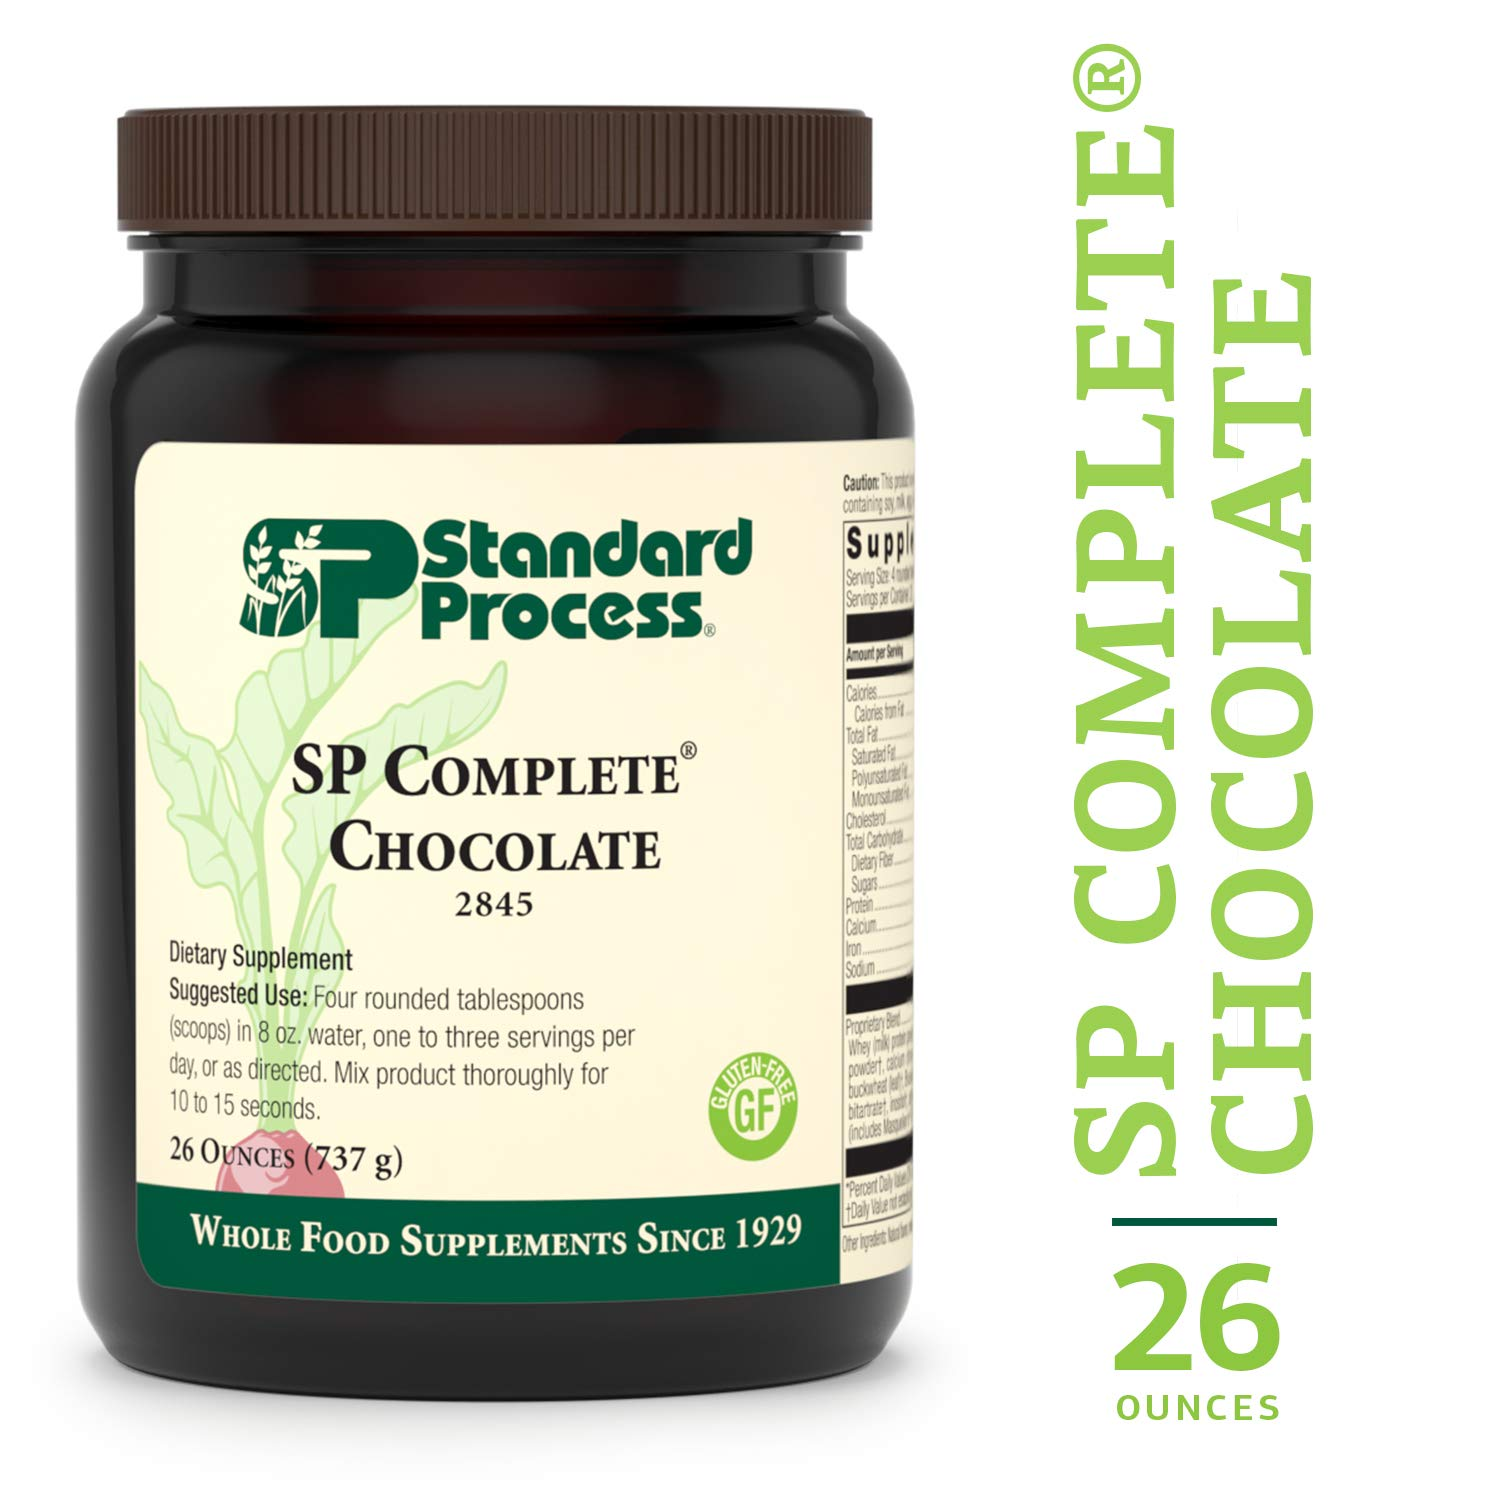 Standard Process - SP Complete Chocolate - Whole Food Nutritional Supplement, Protein, Calcium, Antioxidants, Supports Intestinal, Muscular, Immune System, Gluten Free, Vegetarian - 26 oz. by Standard Process